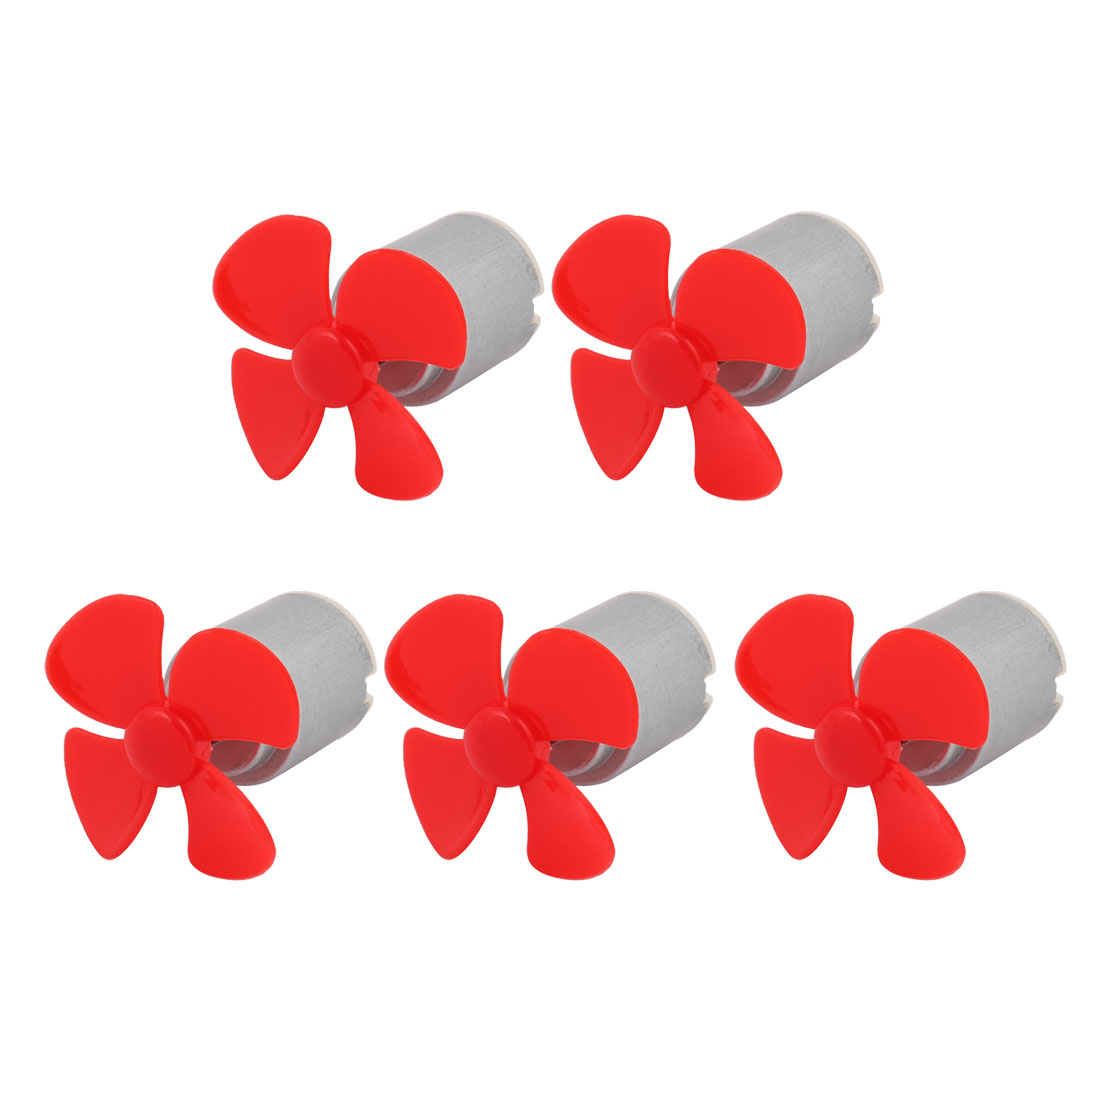 5pcs DC 3V 0.13A 13000RPM Strong Force Motor 4 Blades 40mm Red Propeller for RC Aircraft